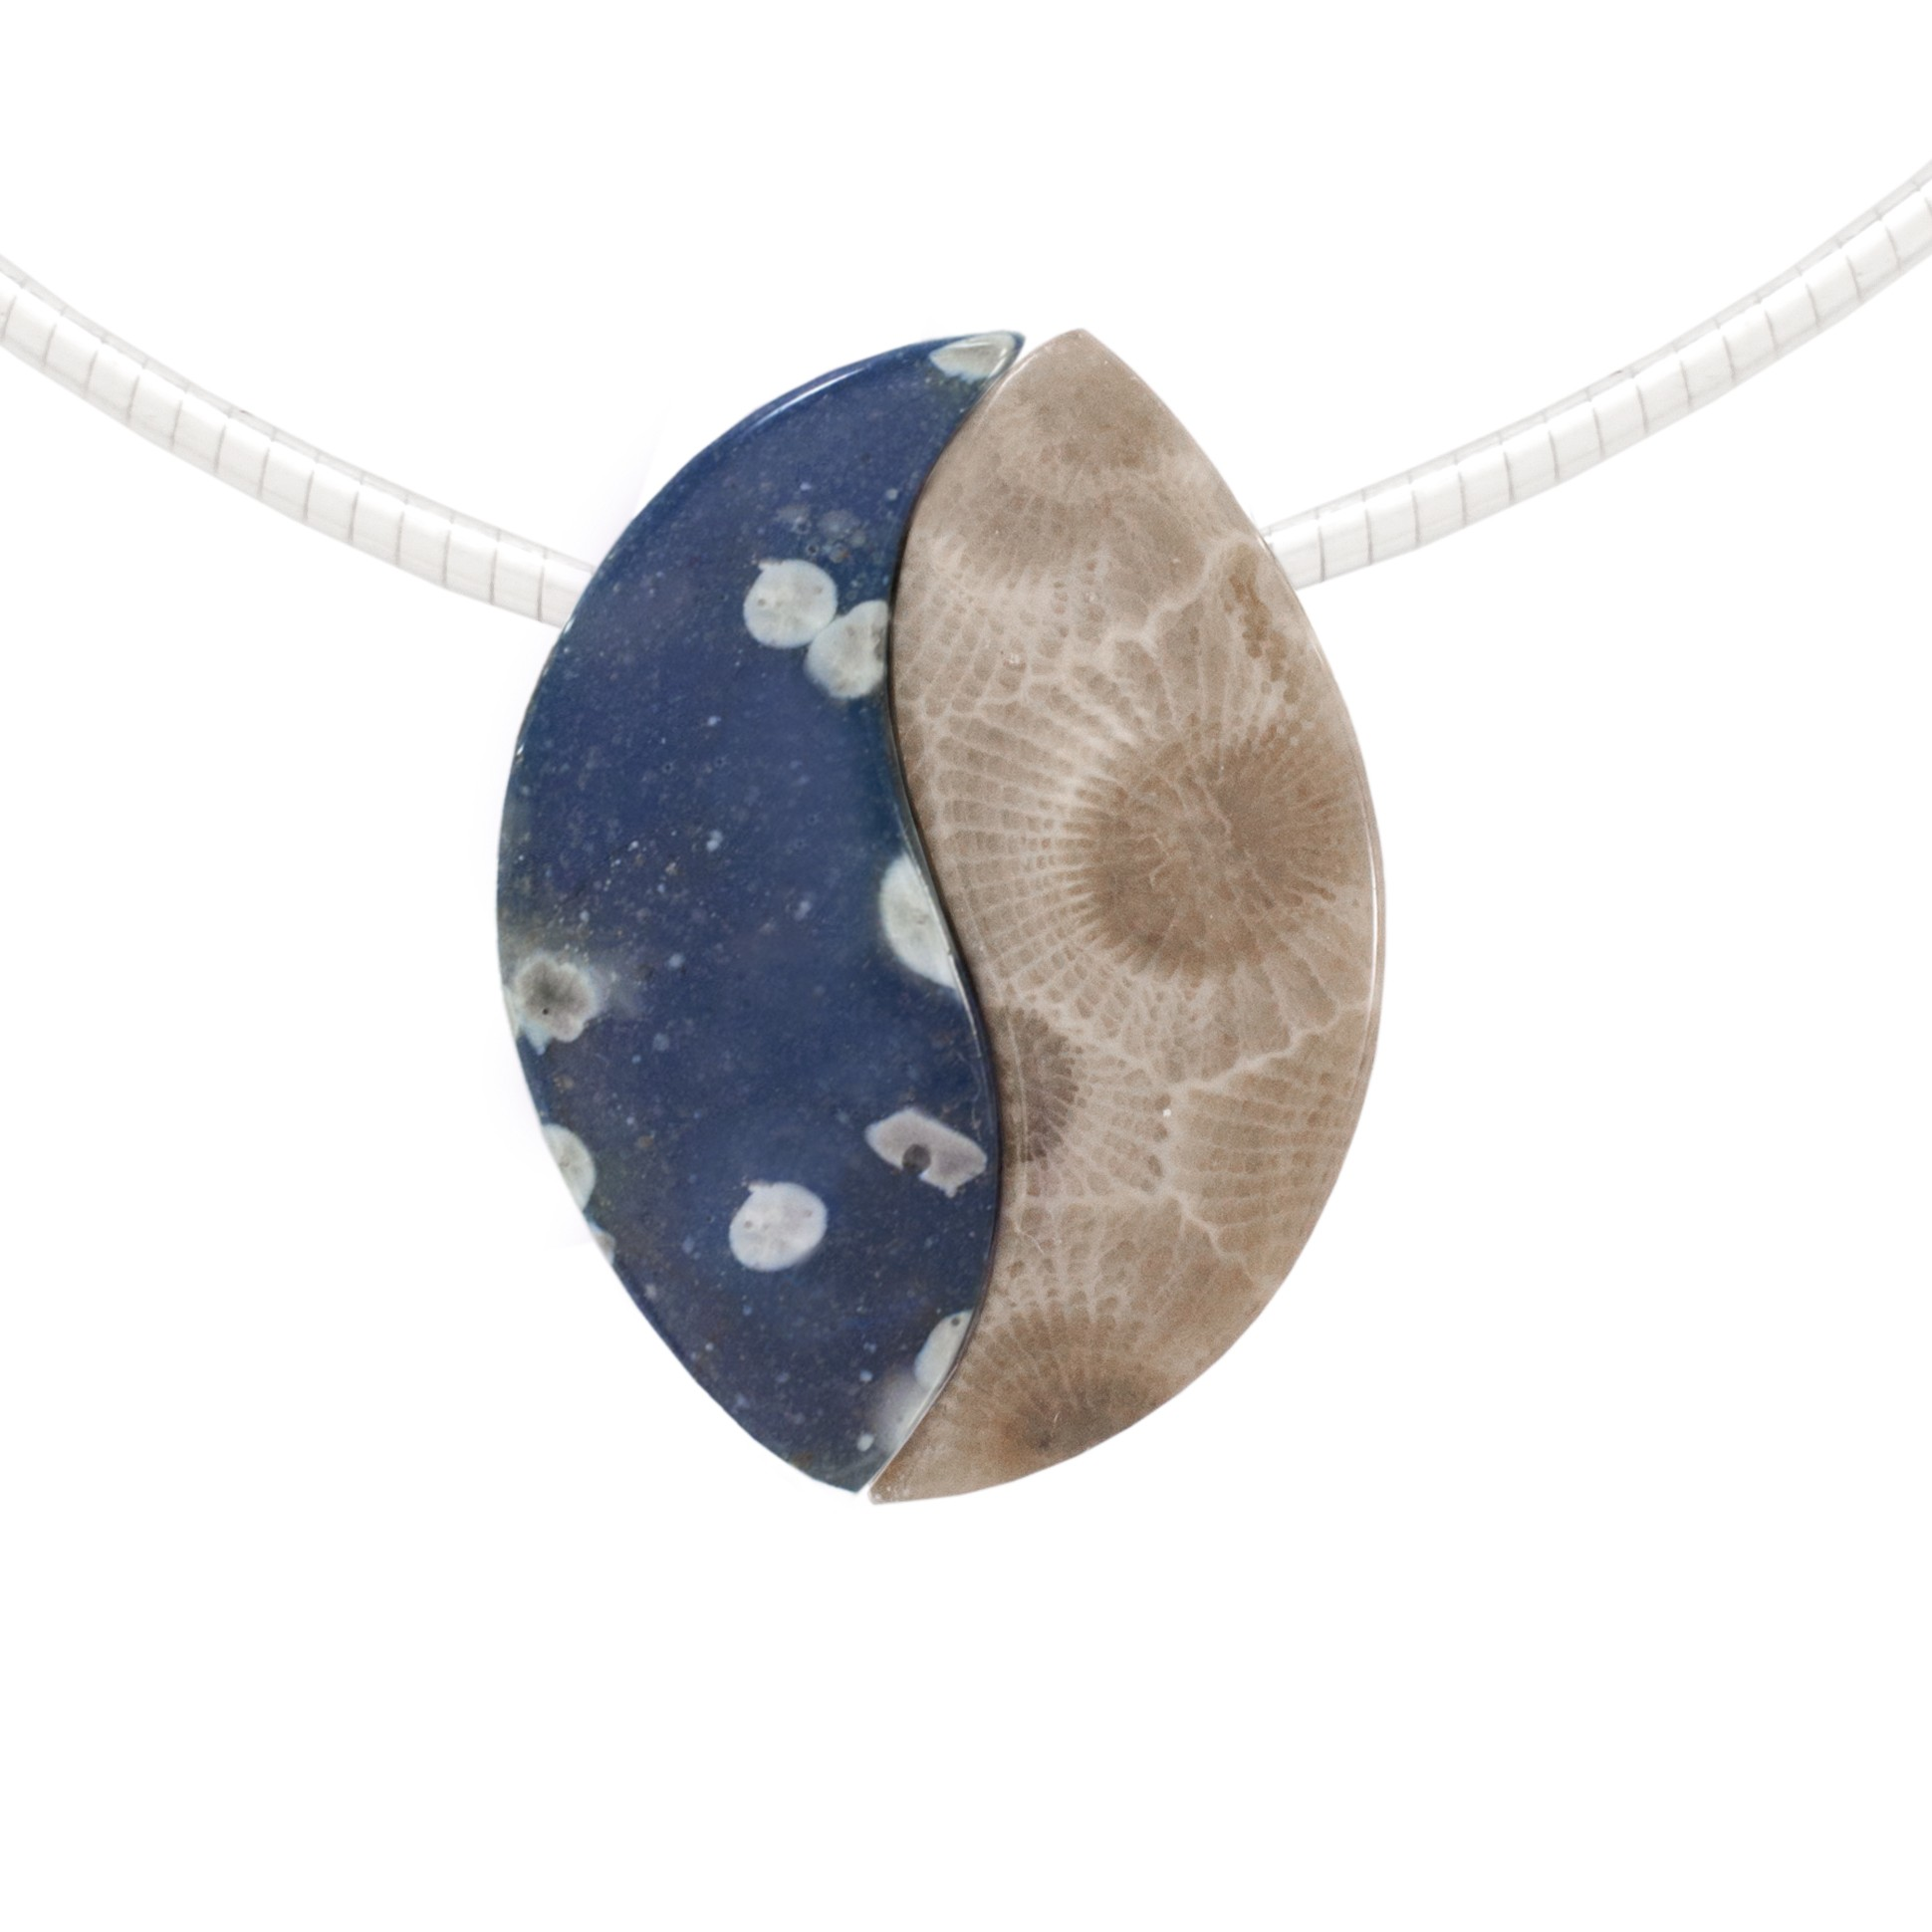 Leland Blue and Petoskey stone Unity Bead